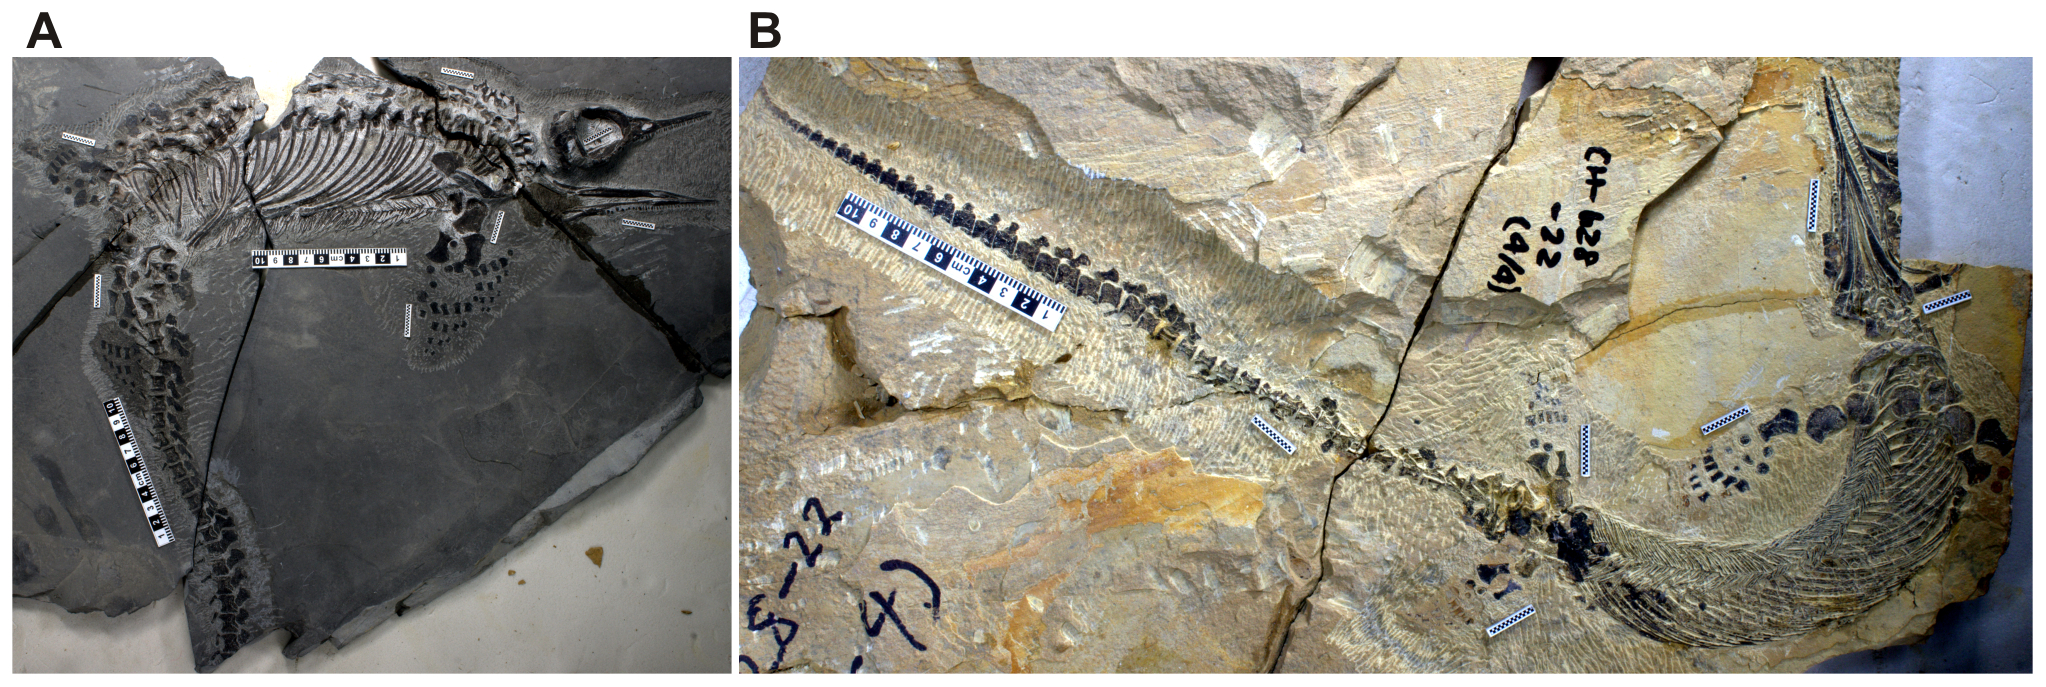 An image of two other almost-complete Chaohusaurus fossil skeletons, from the research paper in PLOS One, that were also collected from the same quarry as the birthing Chaohusaurus. The three specimens came from Majiashan, in east China's Anhui Province. Image credit: Ryosuke Motani, doi:10.1371/journal.pone.0088640.